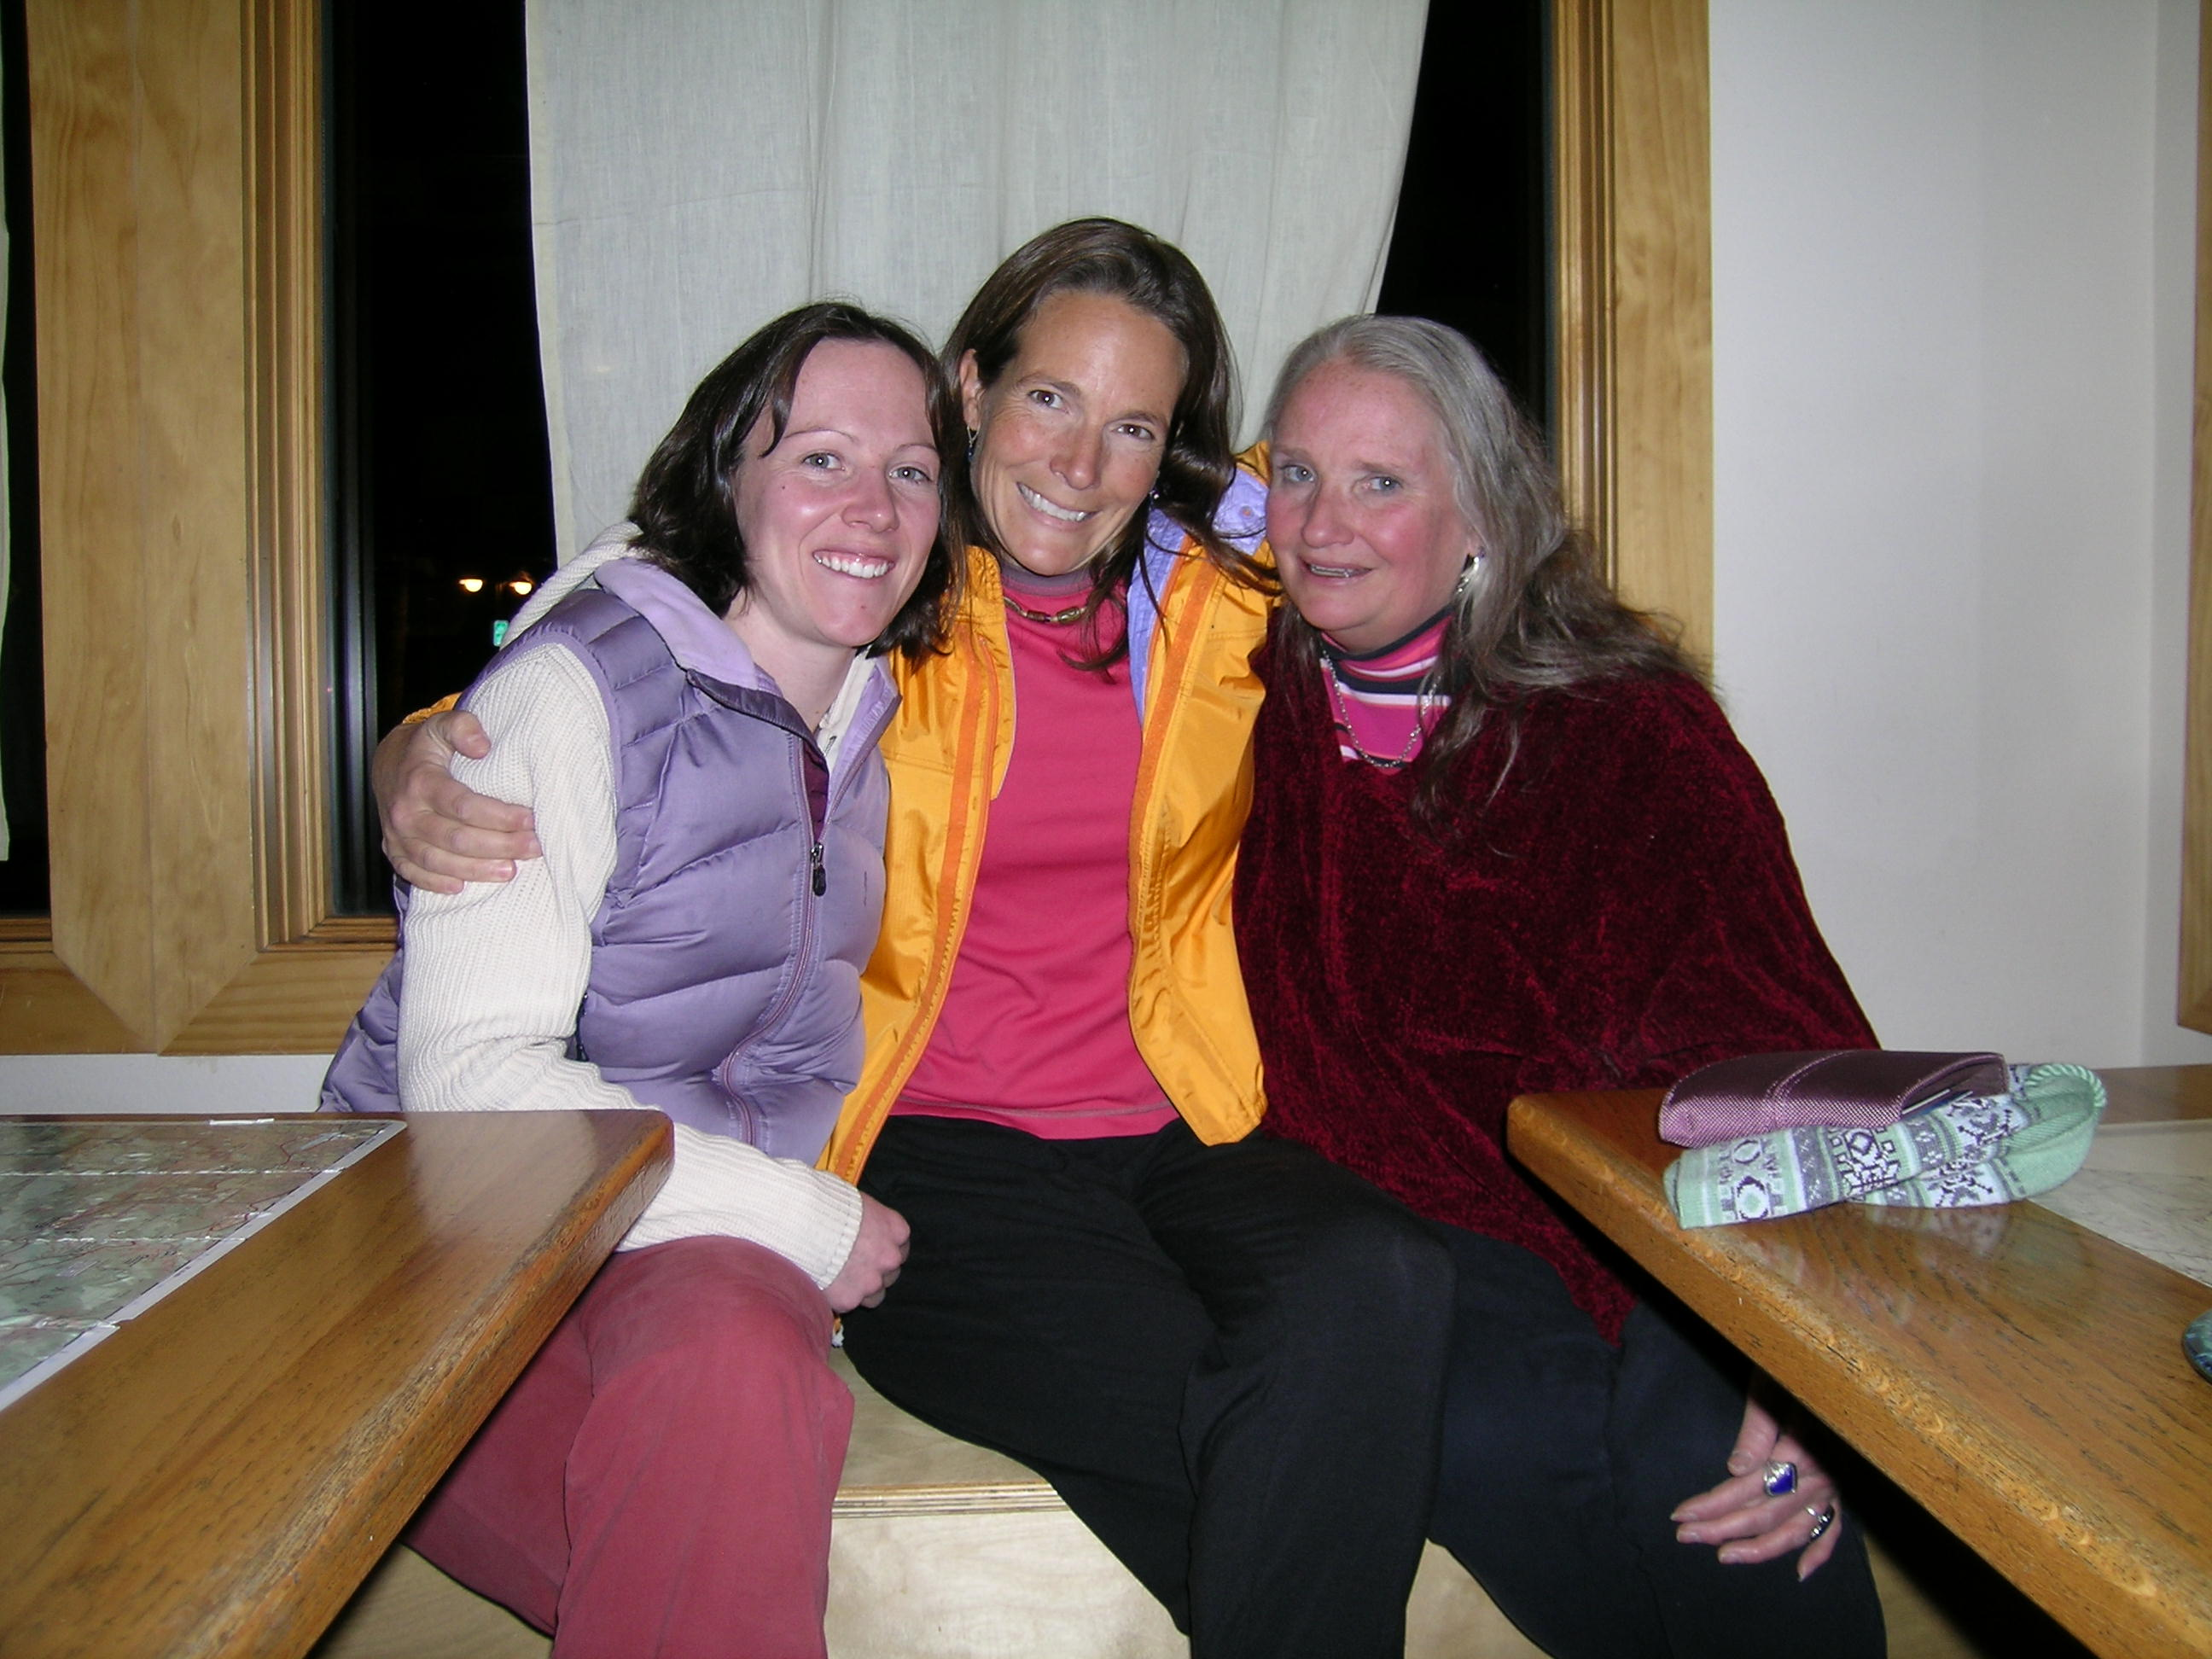 Emily, Holly, & Lorna at Kind Coffee, Estes Park